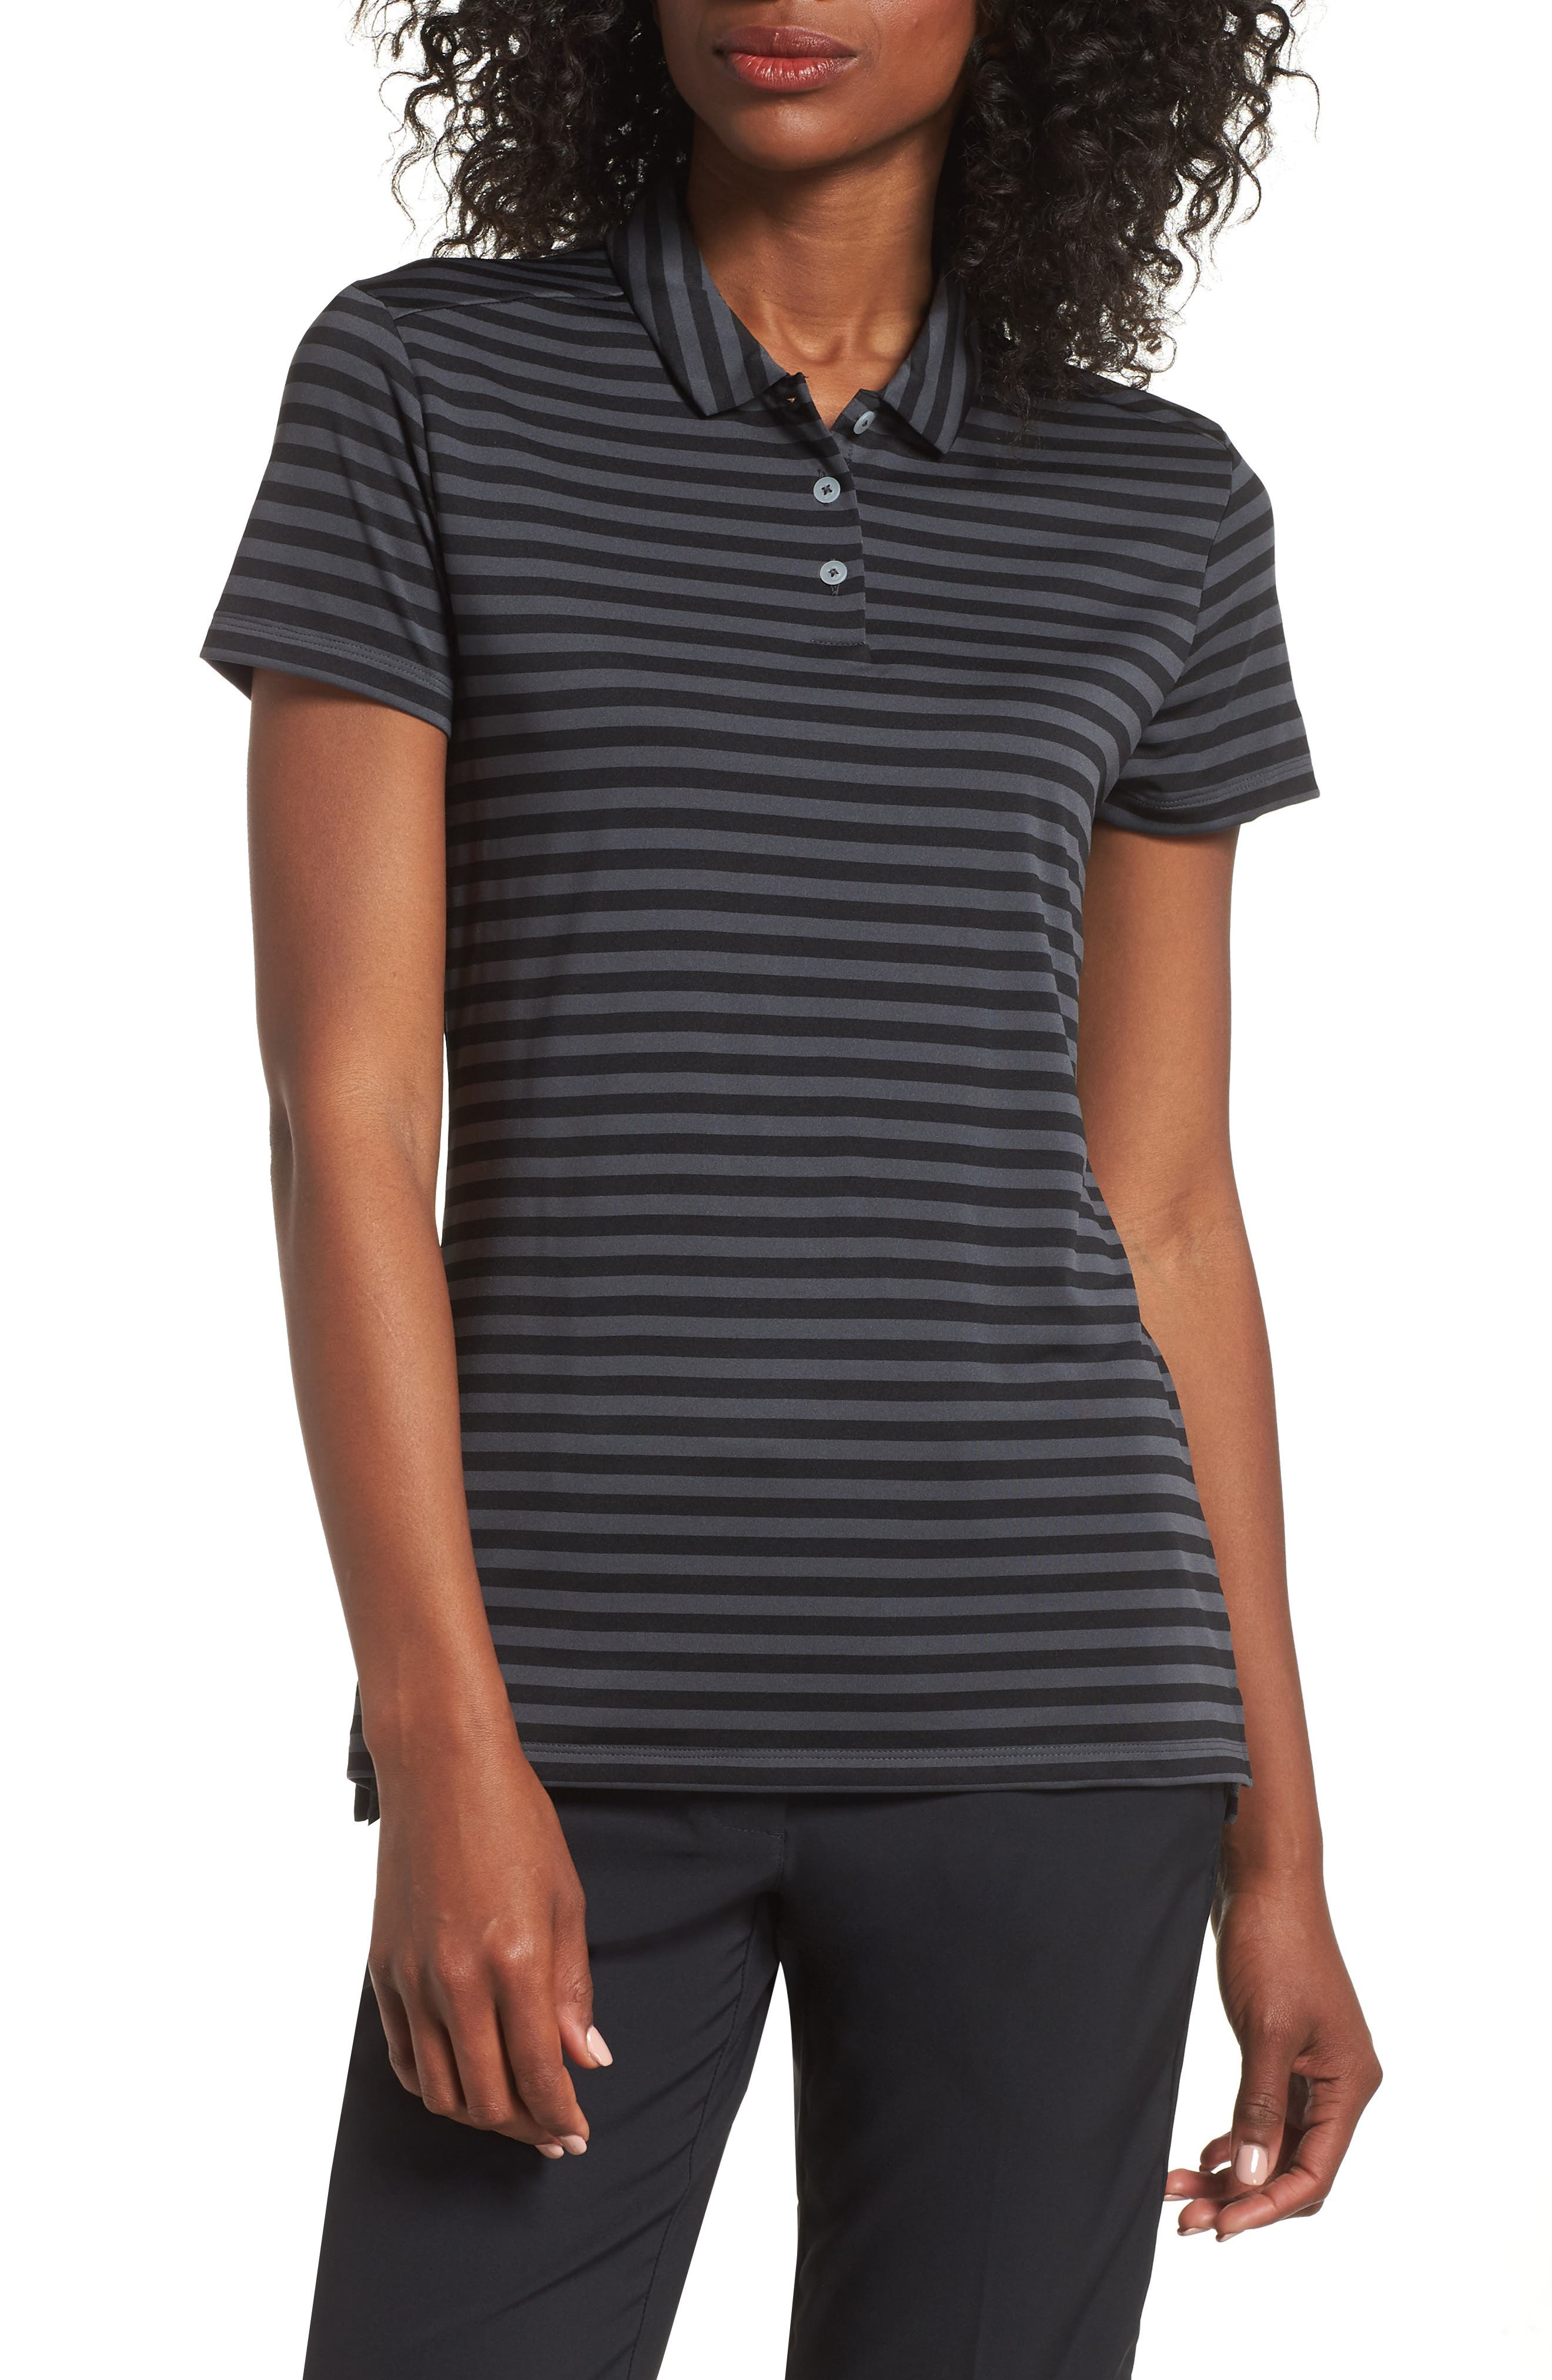 Dry Golf Polo,                         Main,                         color, BLACK/ ANTHRACITE/ SILVER